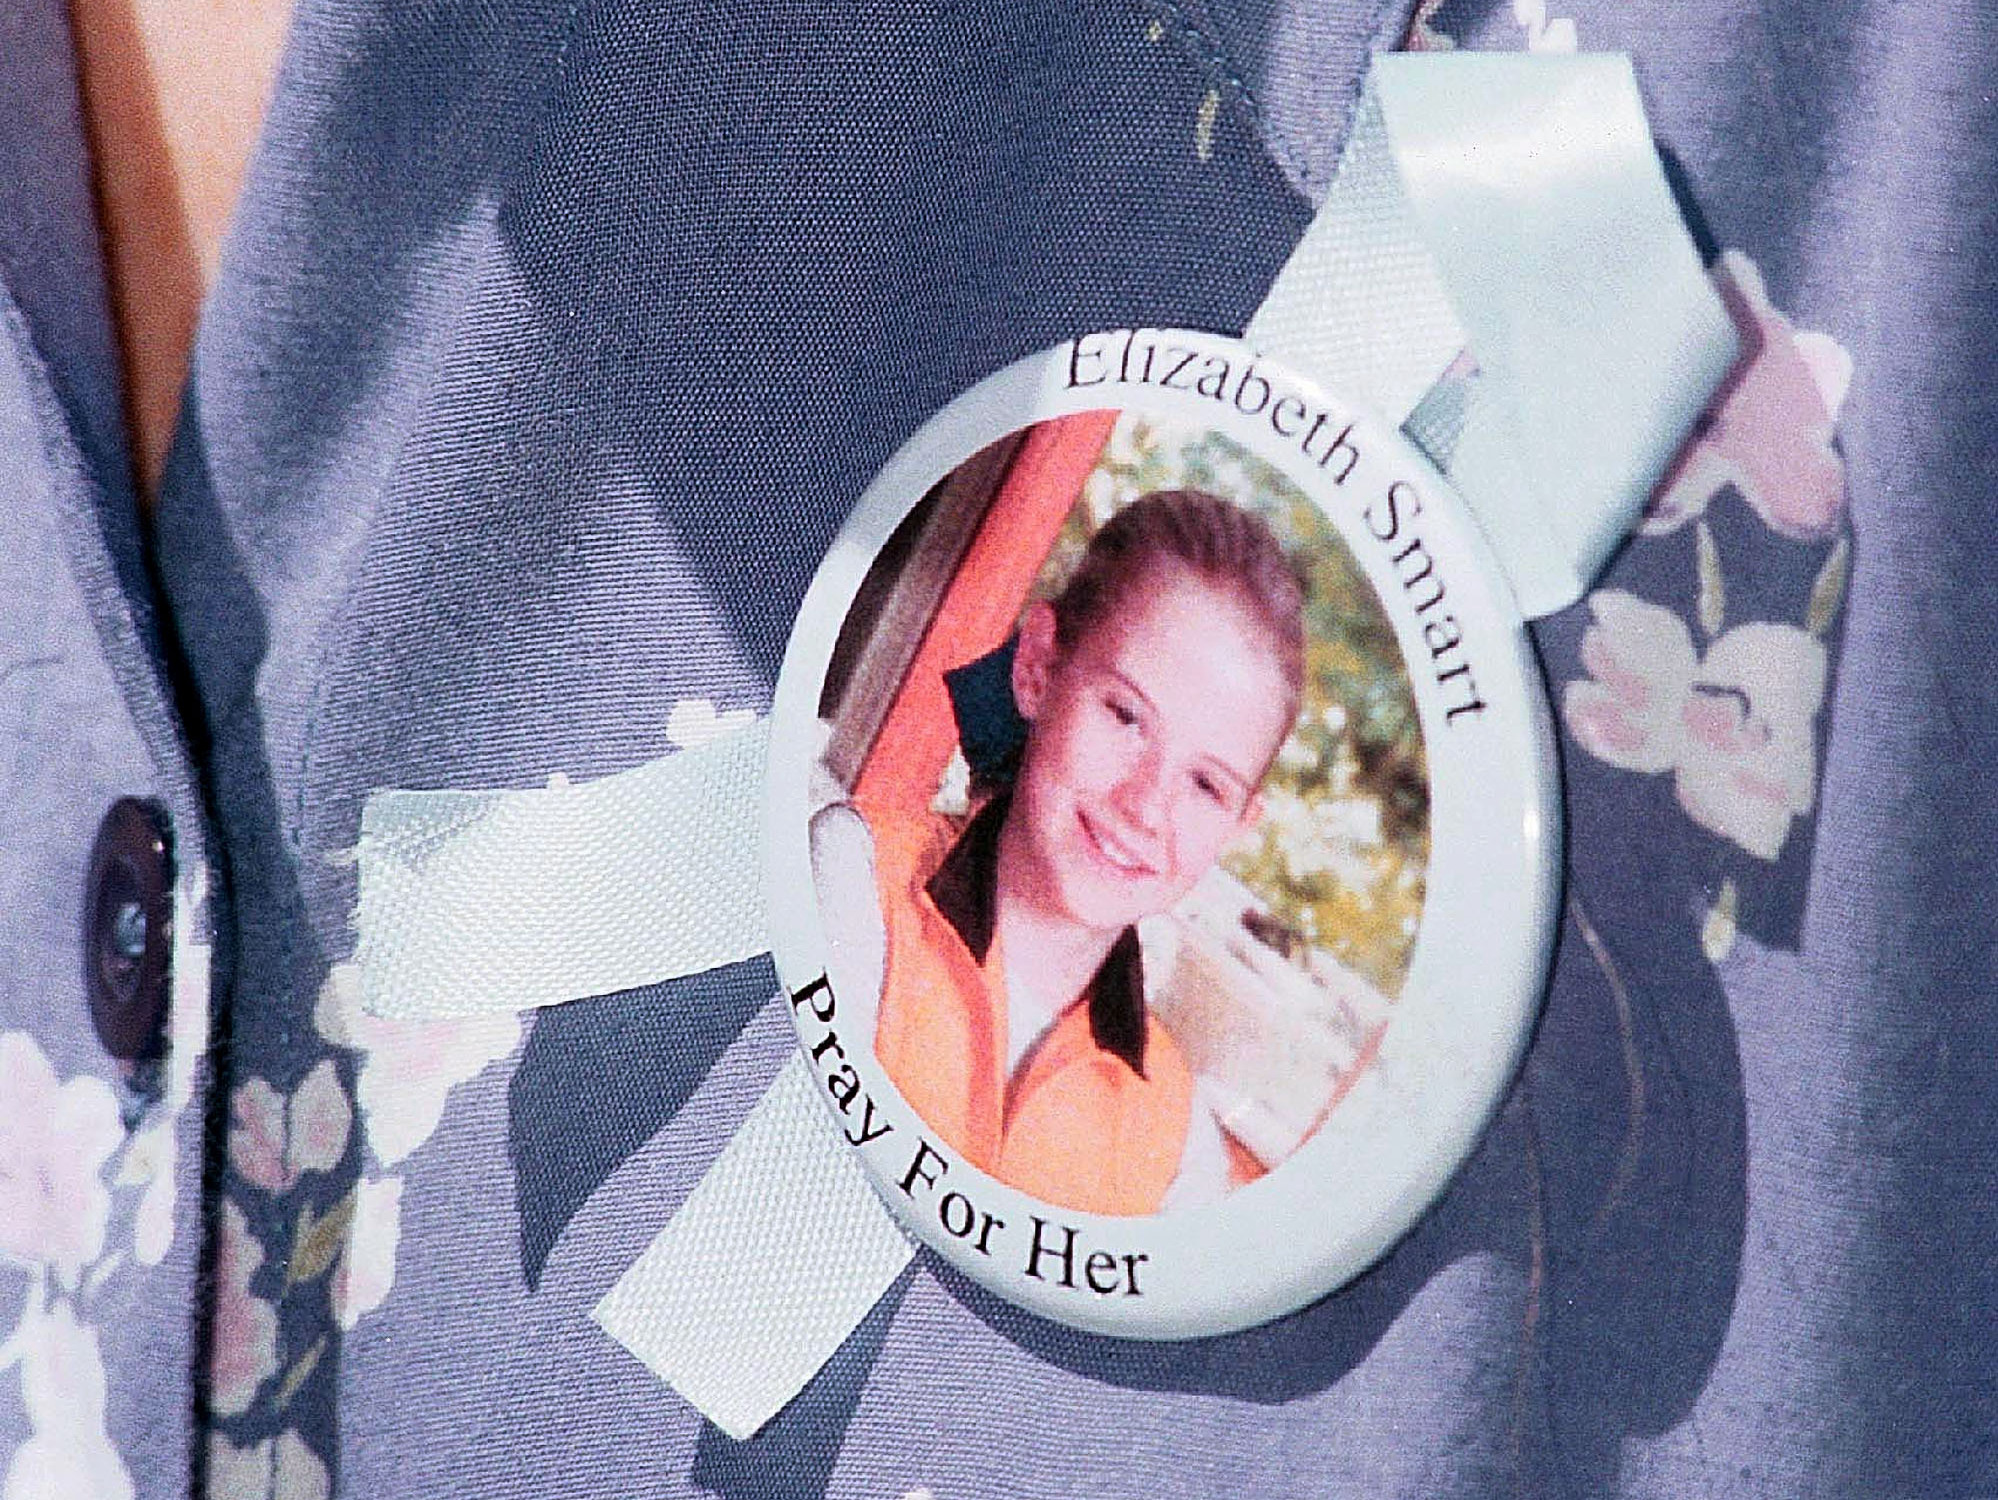 Elizabeth Smart's aunt, Cynthia Smart-Owens, wears a button of her niece during a news conference in June 2002, days after Smart had been abducted.